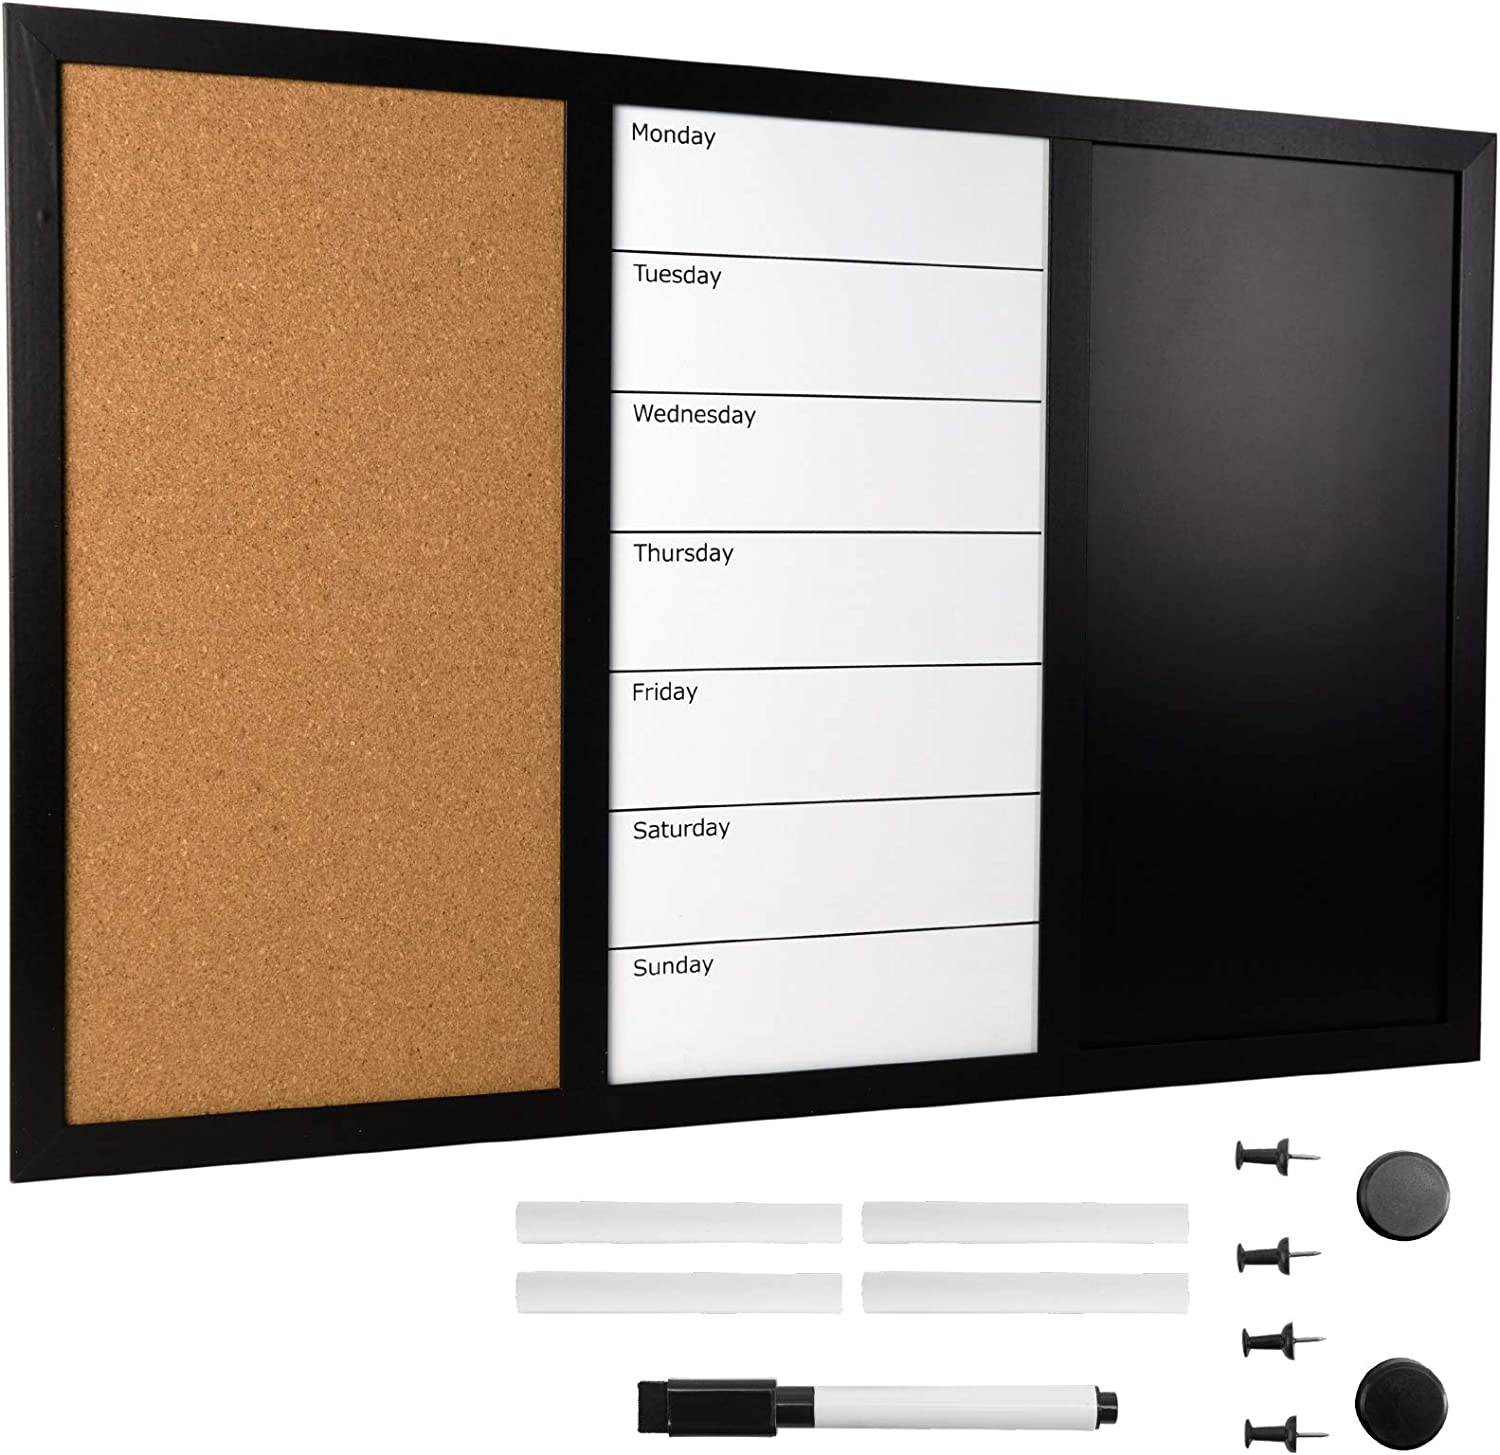 Wall Board Combo Whiteboard Corkboard & Chalkboard: Magnetic Large Weekly Daily Planner Note Reminder Wall Mounted Task Organizer 23.5